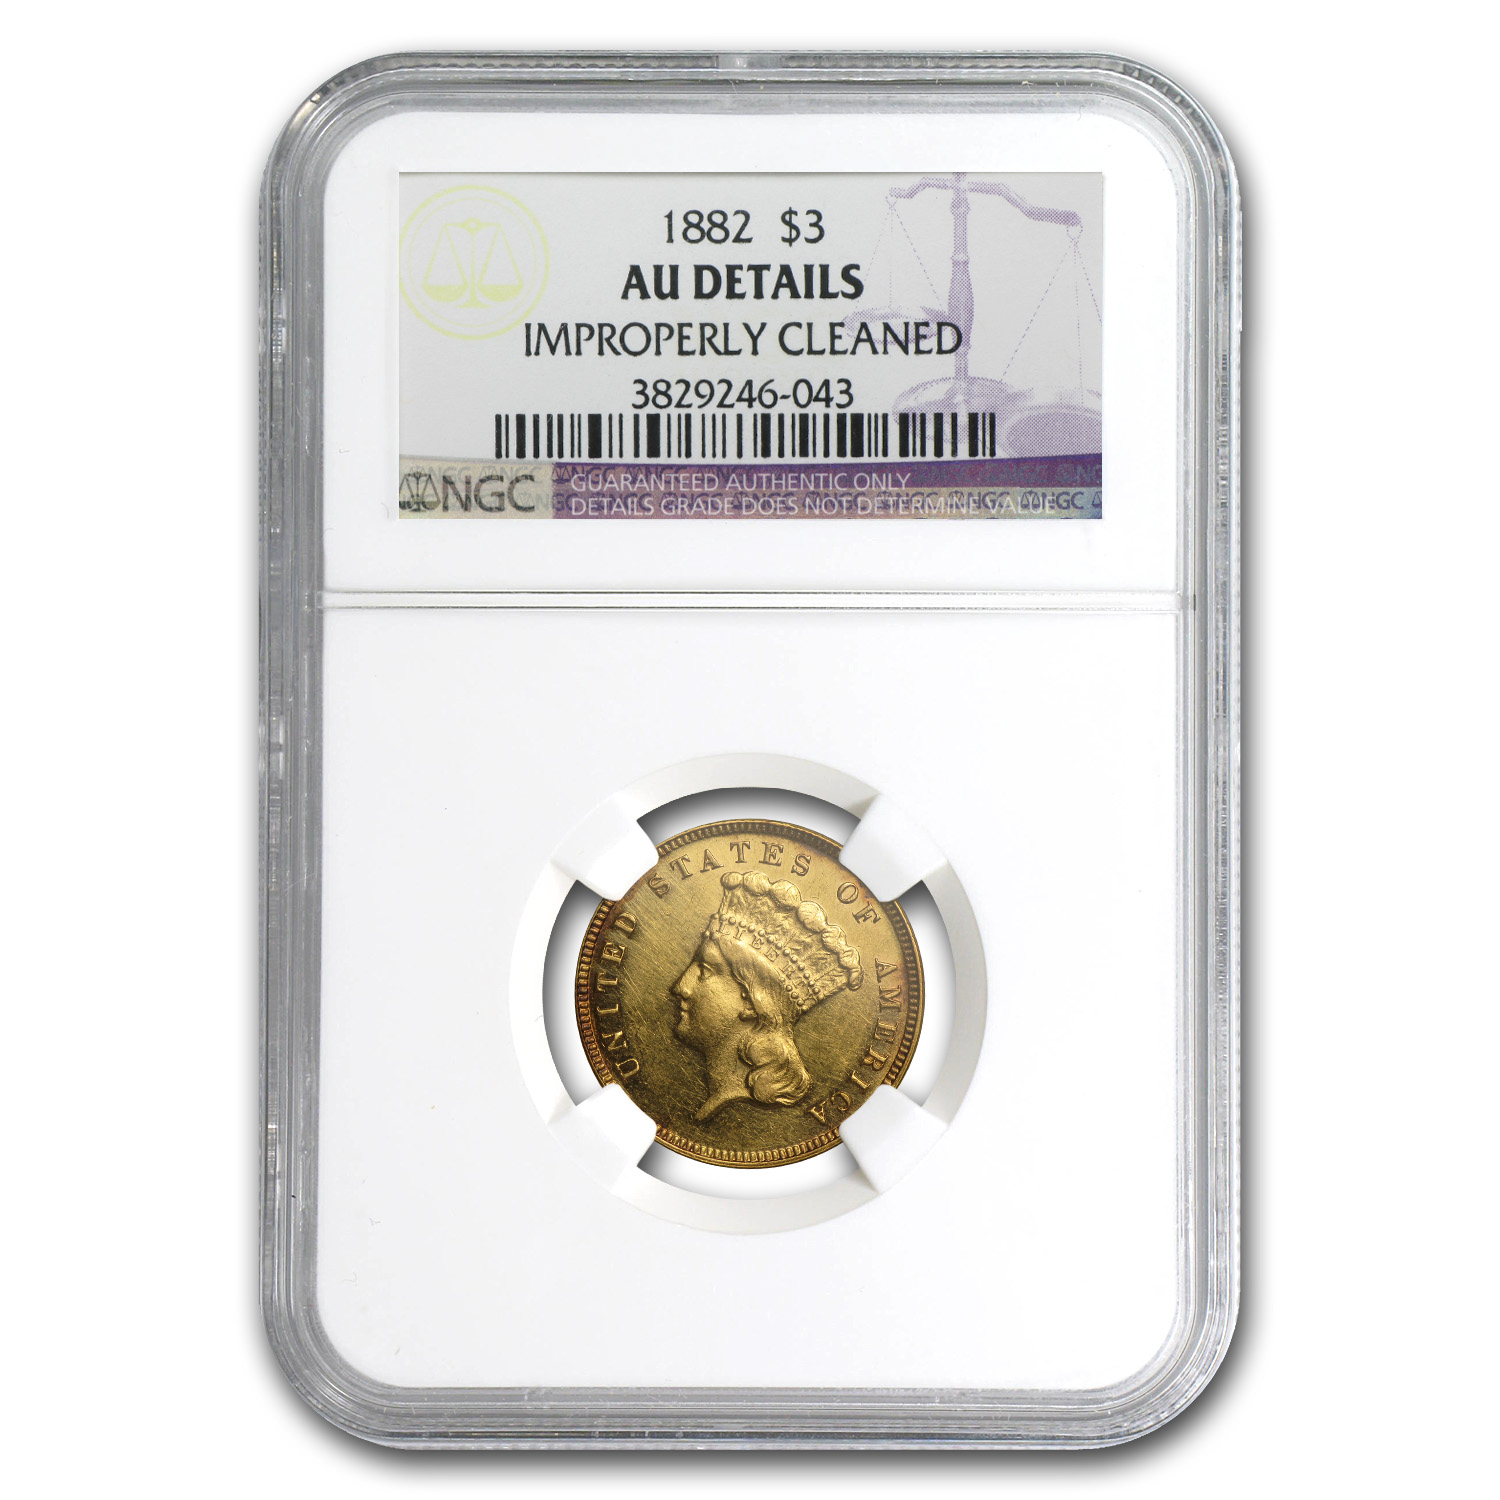 1882 $3 Gold Princess - AU Details NGC - (Cleaned)